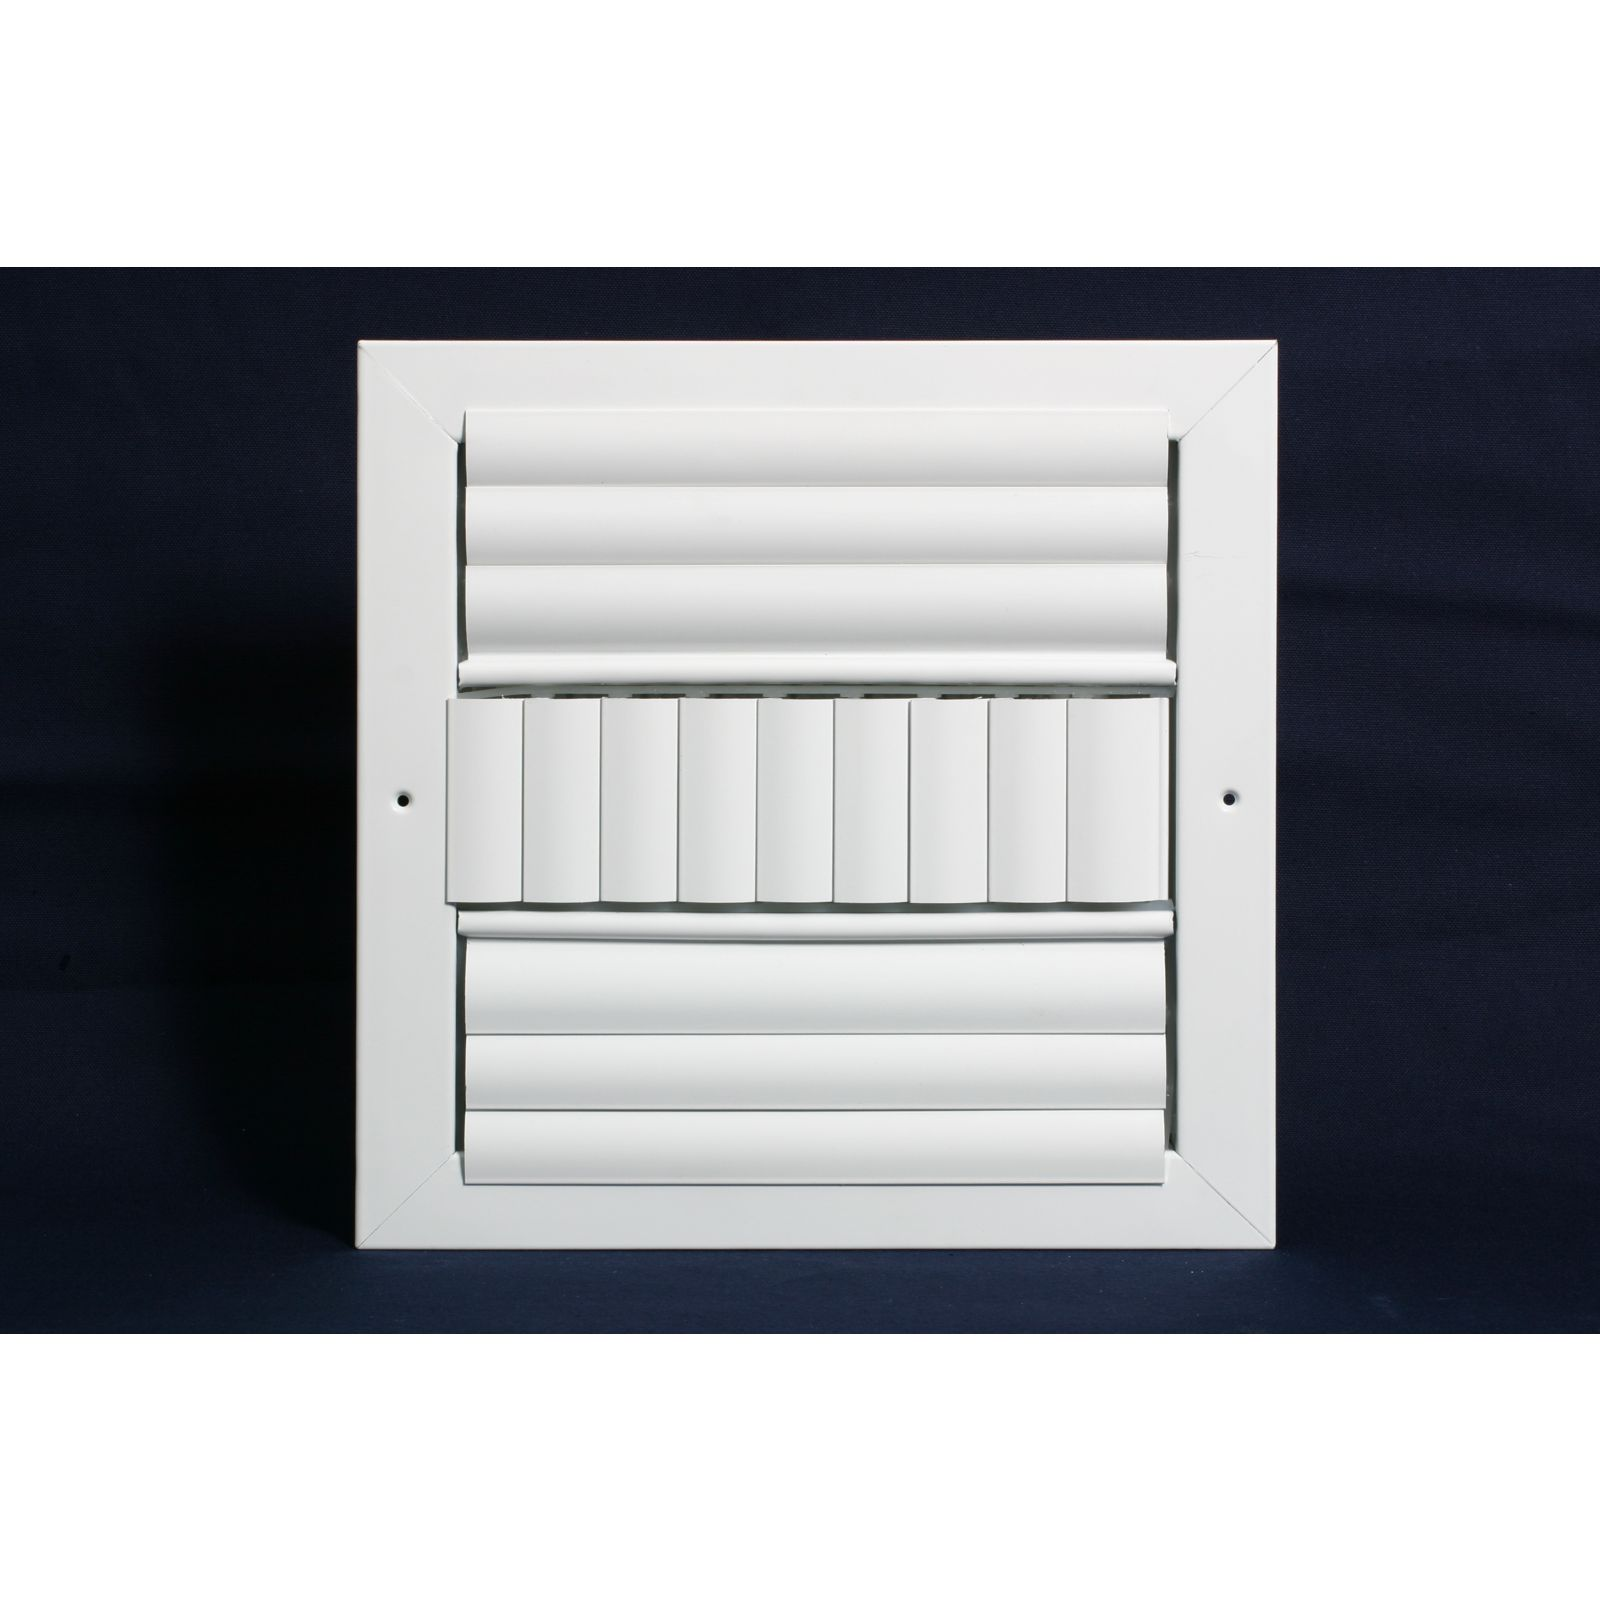 "Grille Tech CL3M1010 - Aluminum Ceiling 3Way Deflection Supply, Multi-shutter 10"" X 10"" White"